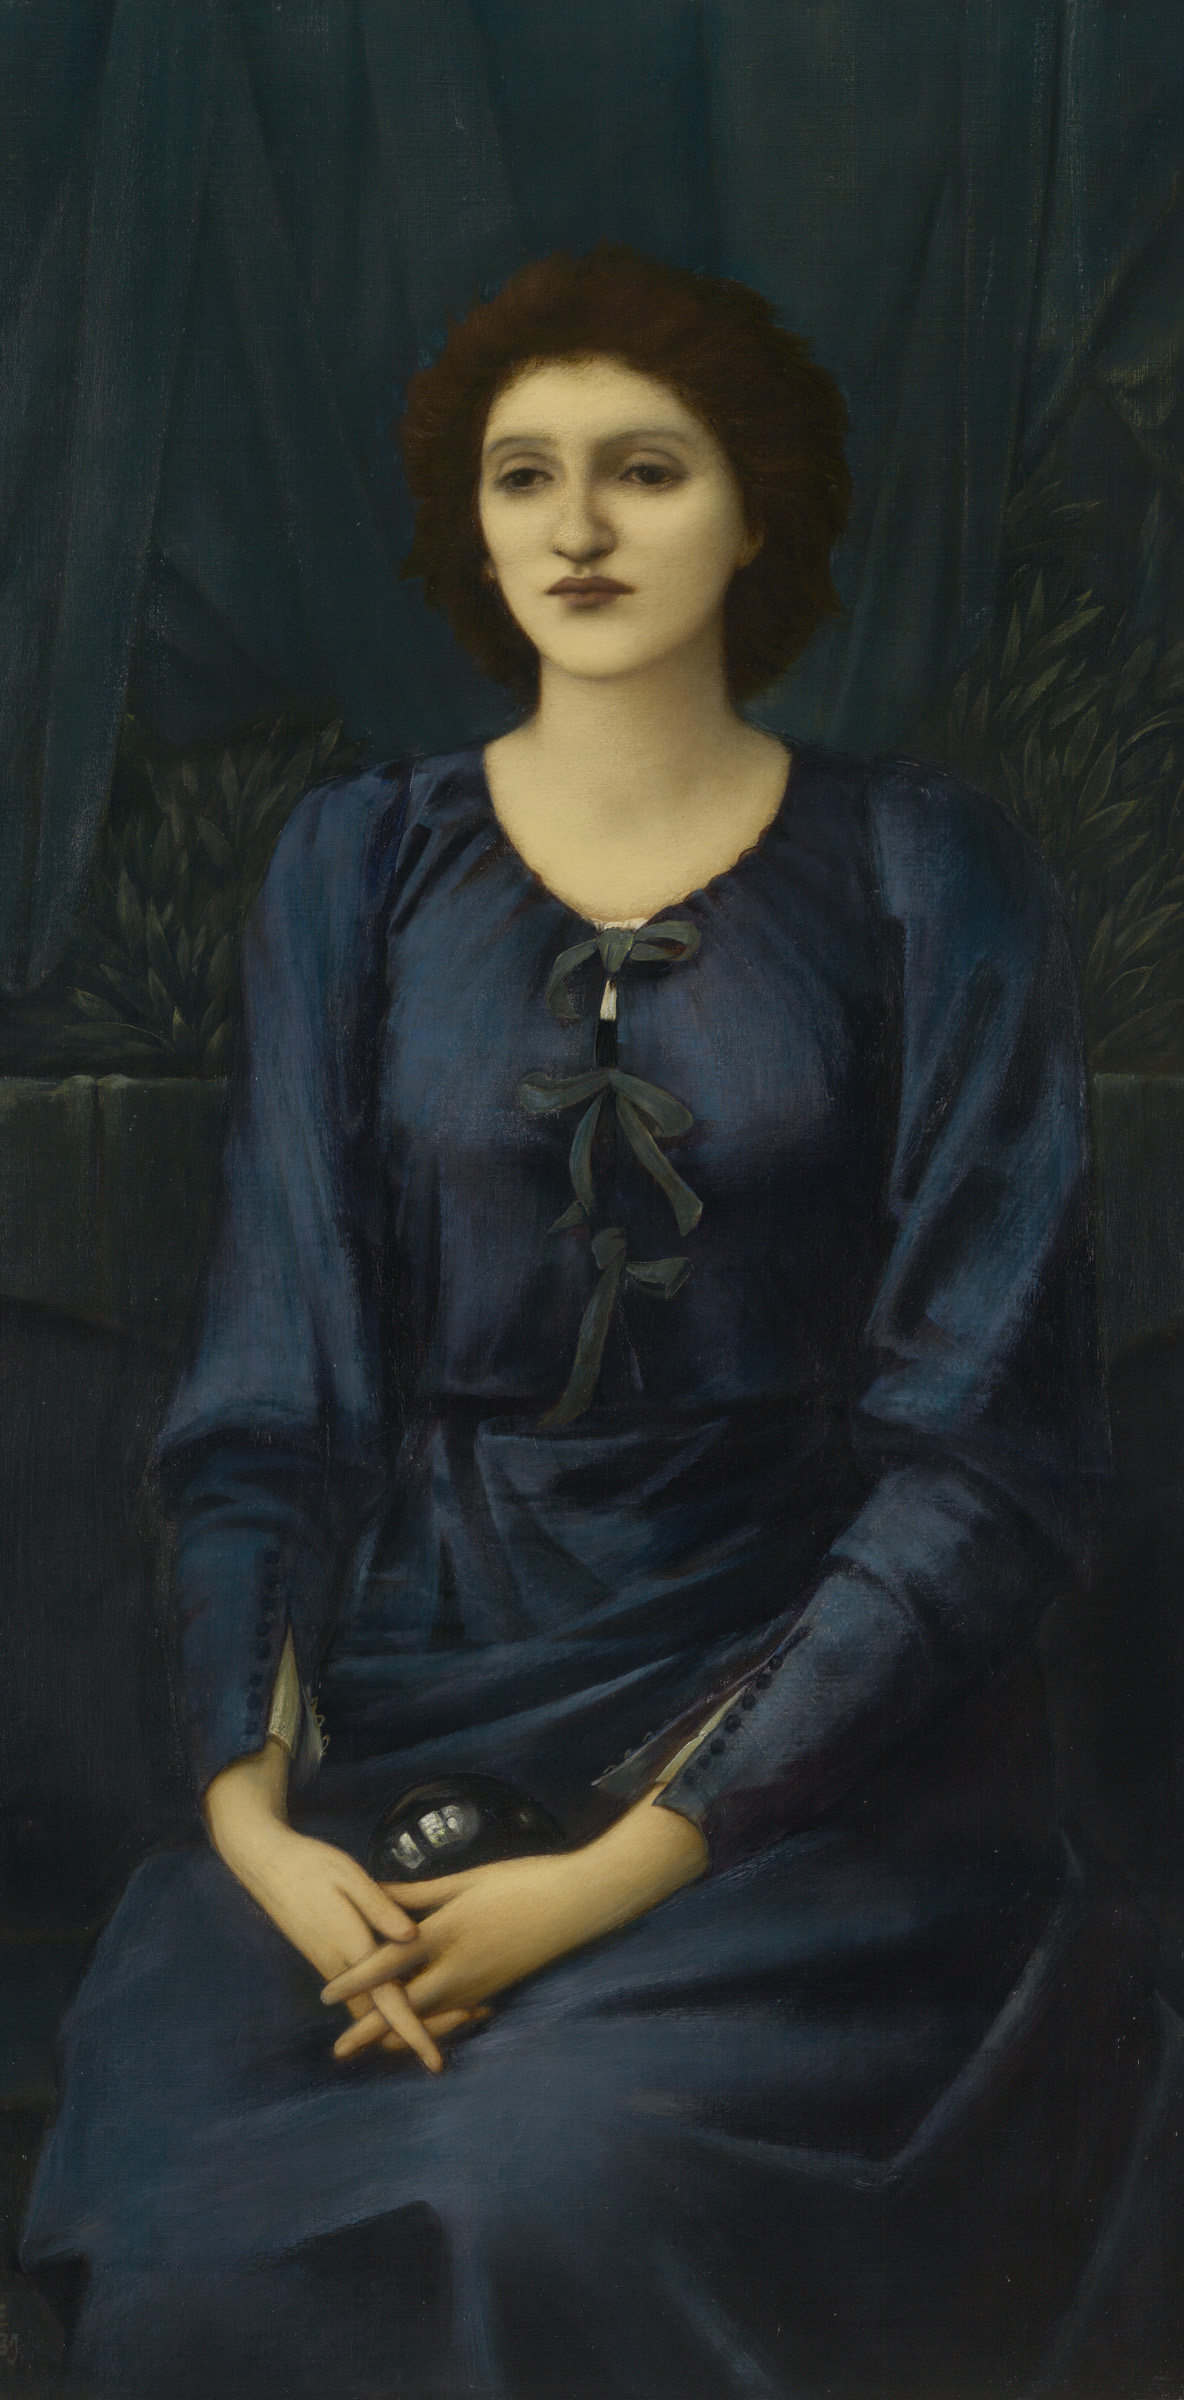 burne-jones-edward-1833-1898-mme-madeleine-deslandes-c1896-2005-585